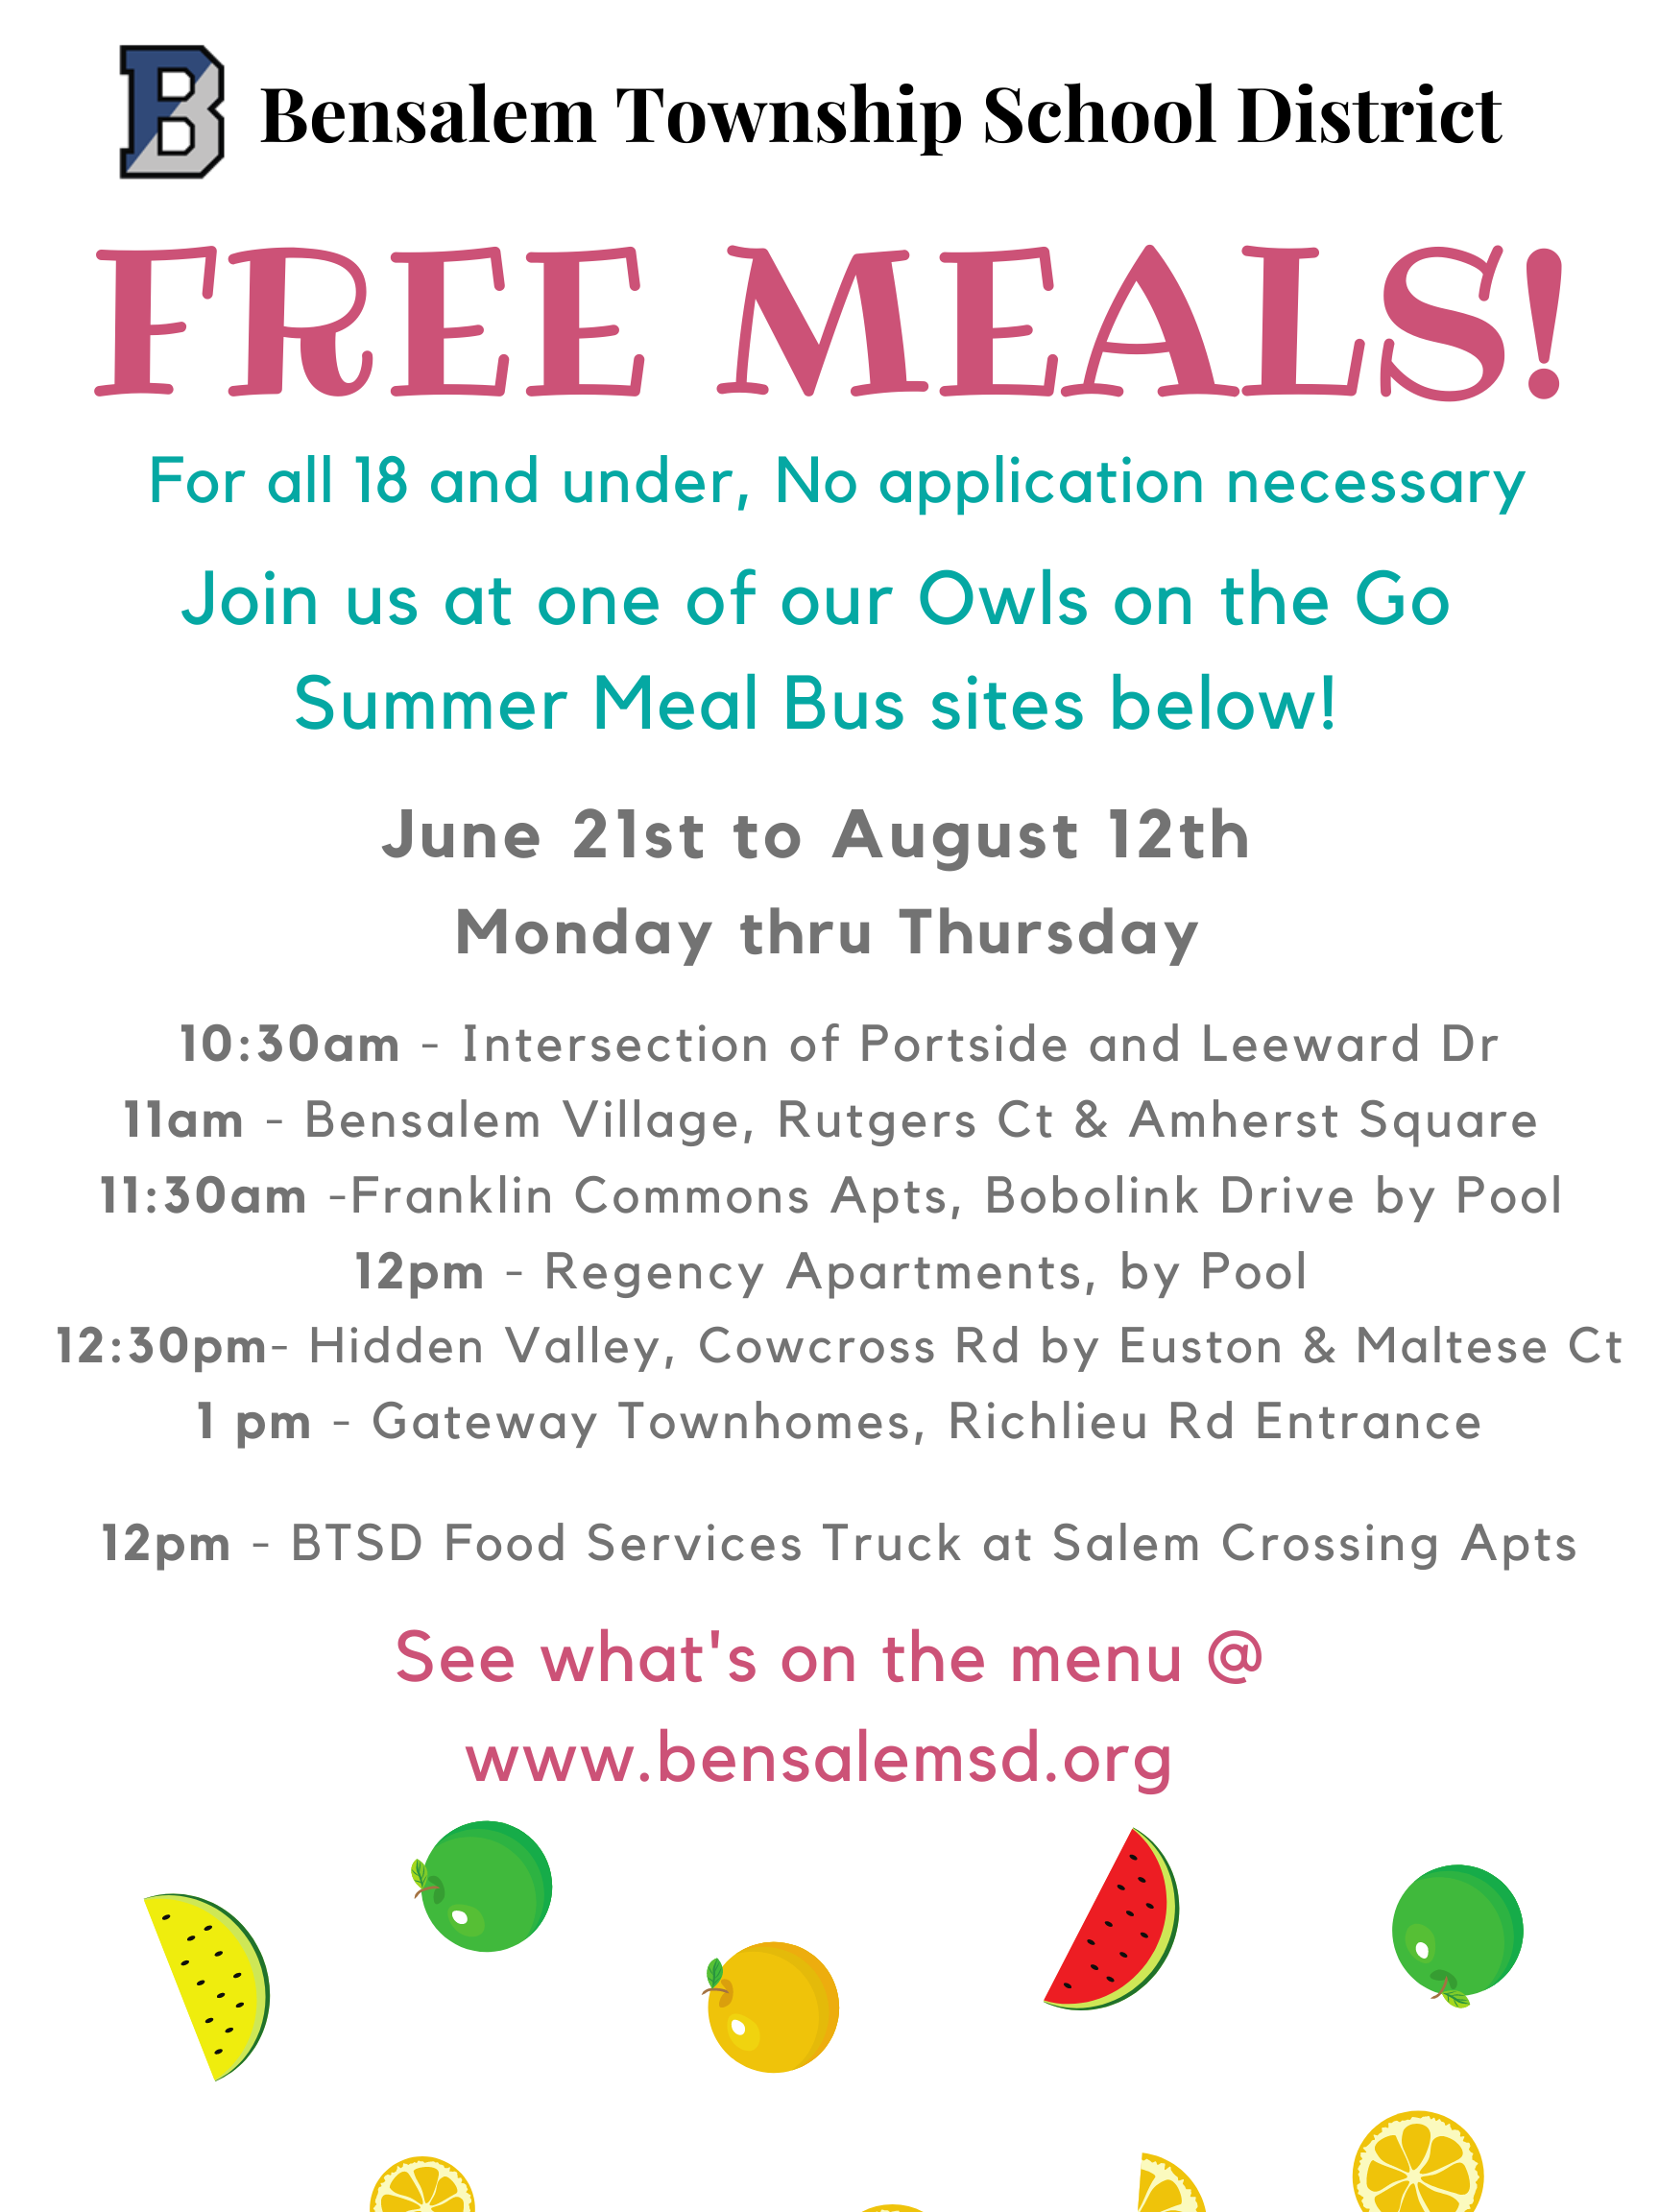 No cost meals from June 21 to AUgust 12 on the Owls on the Go Summer Meals Bus